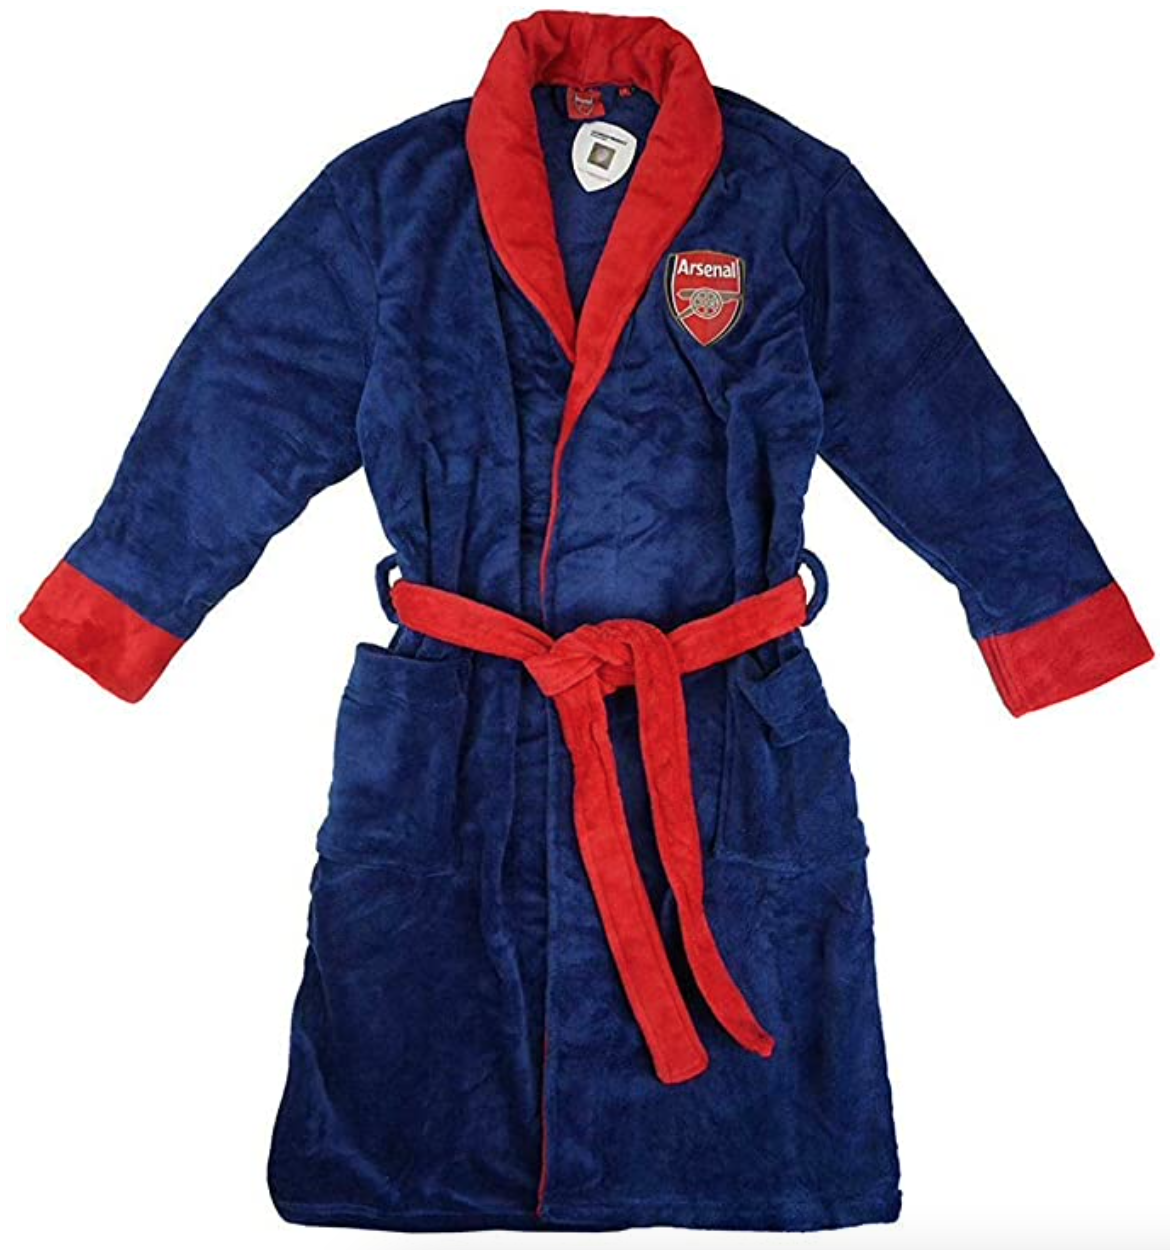 Official Arsenal Football Club Fleece Dressing Gown